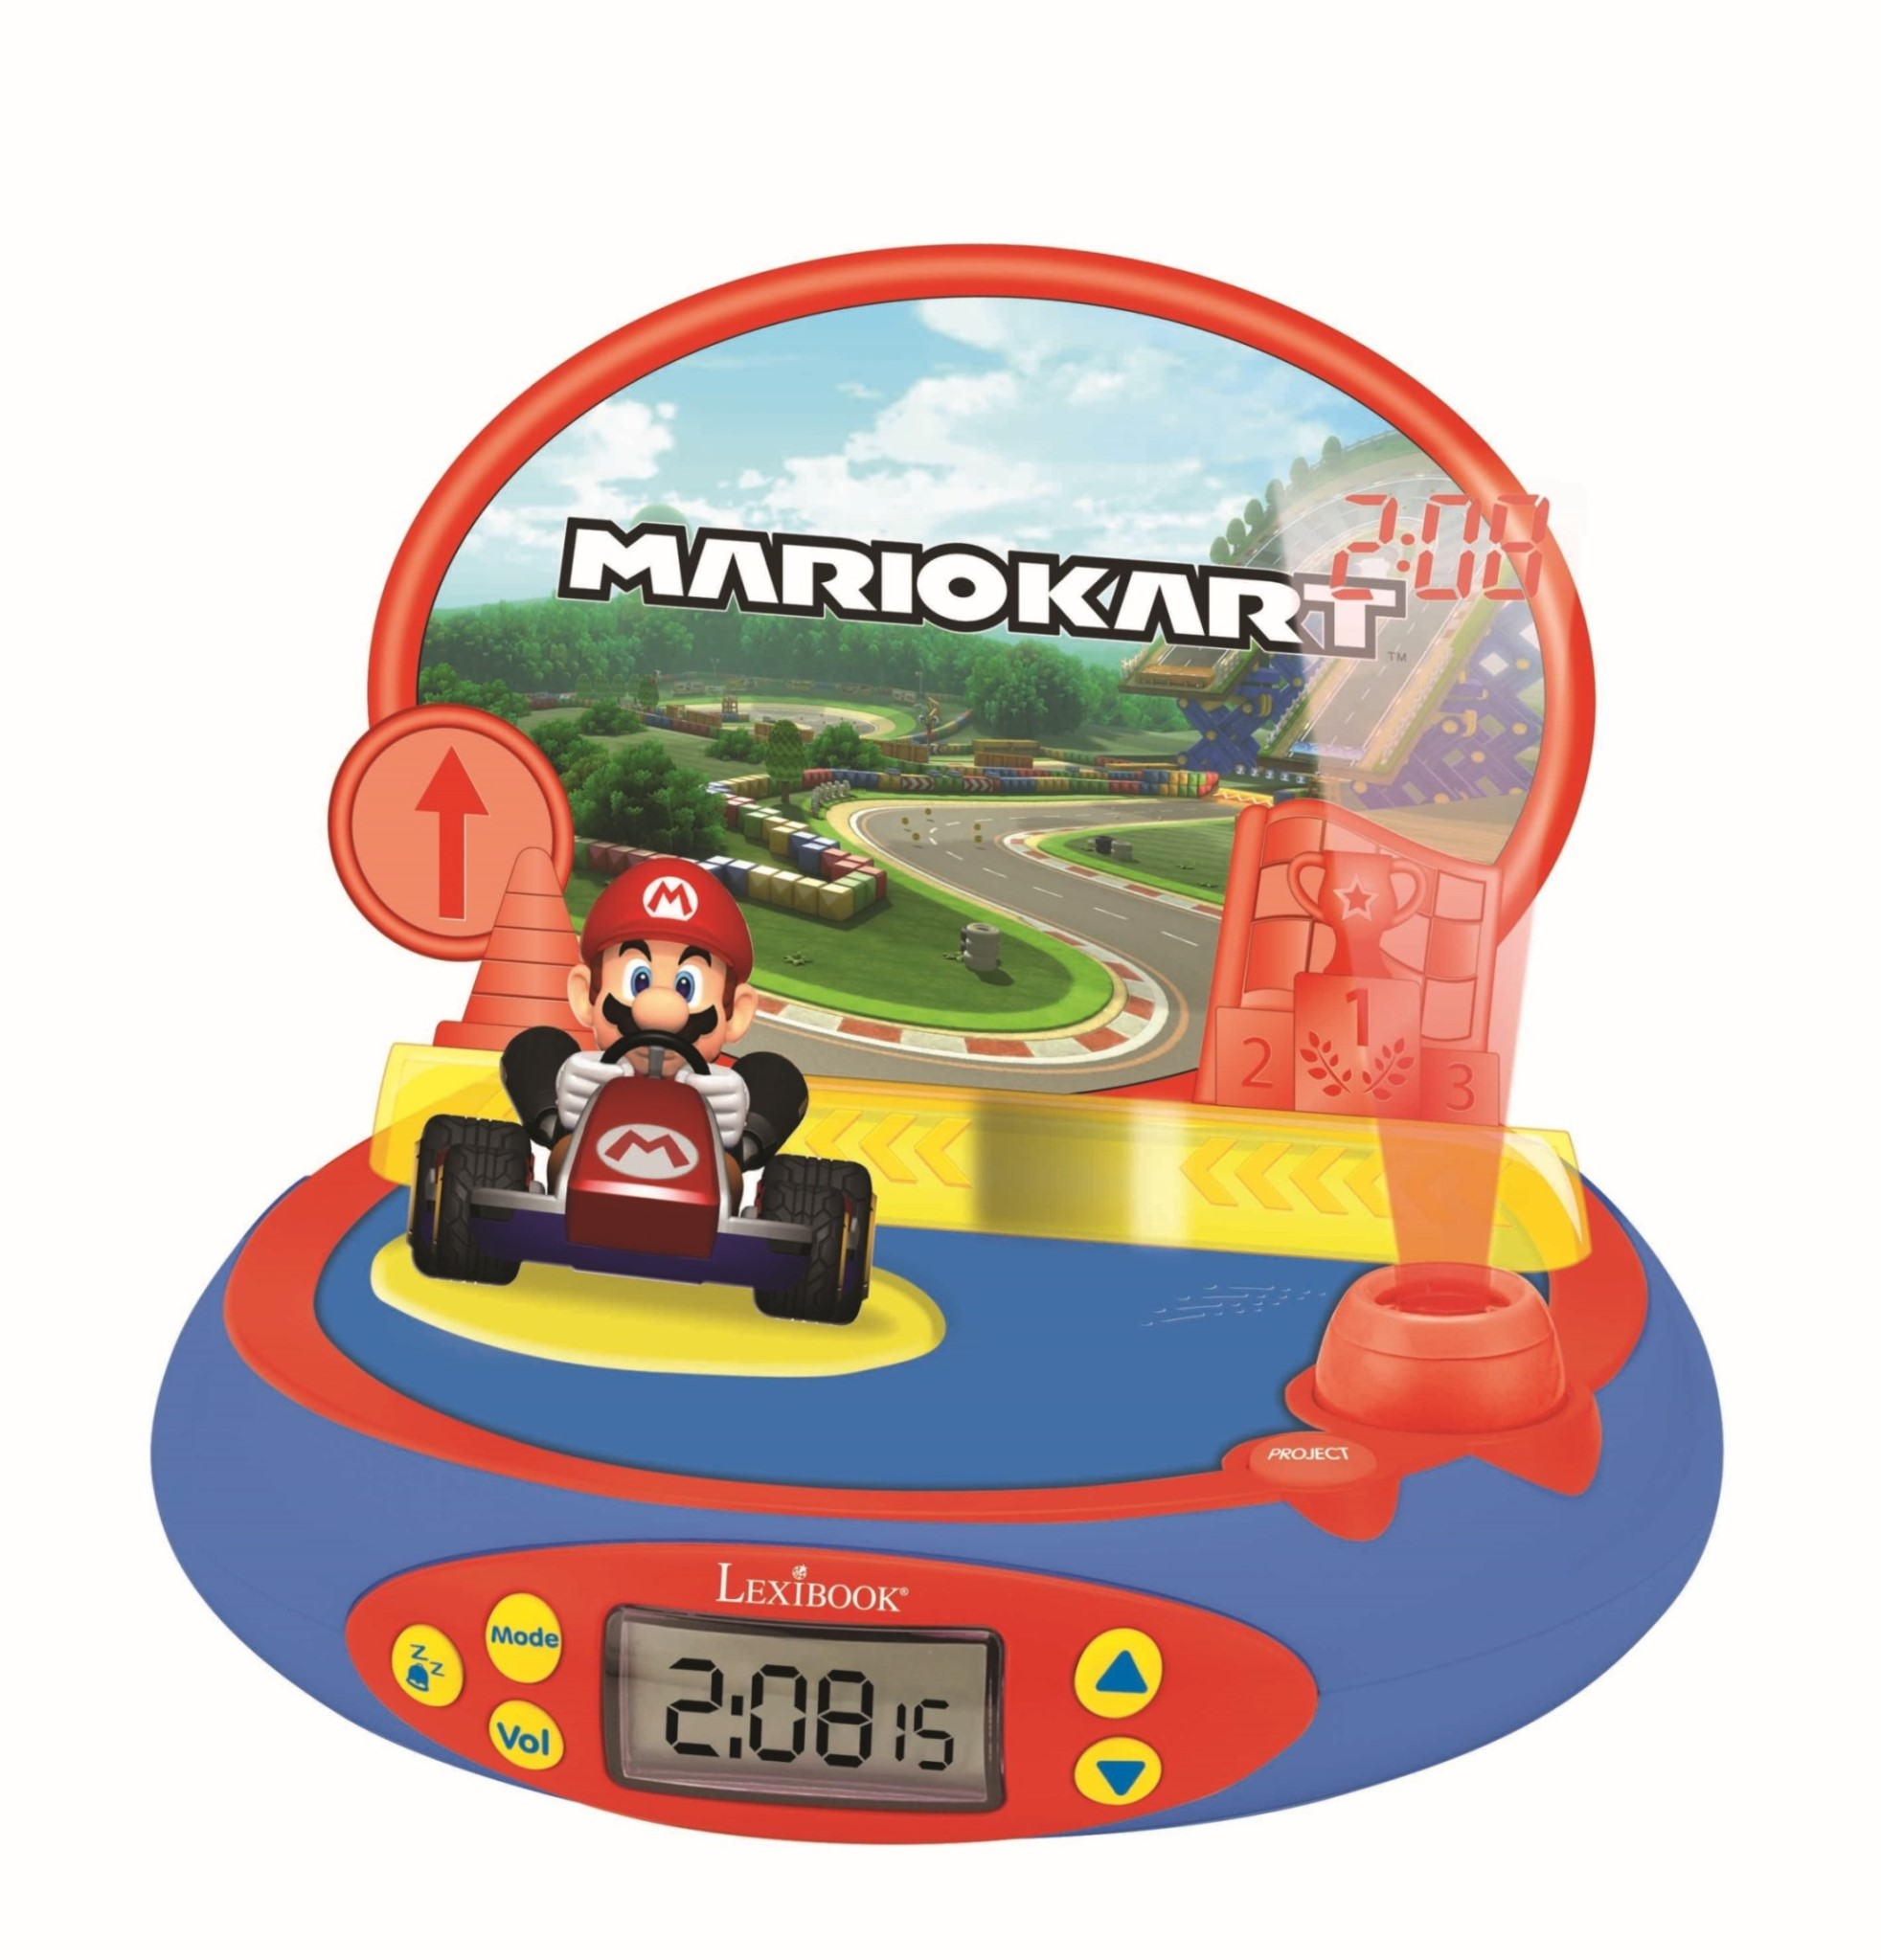 Lexibook - Mario Kart 3D Character Projector Clock with sounds from the video game (RP500NI)